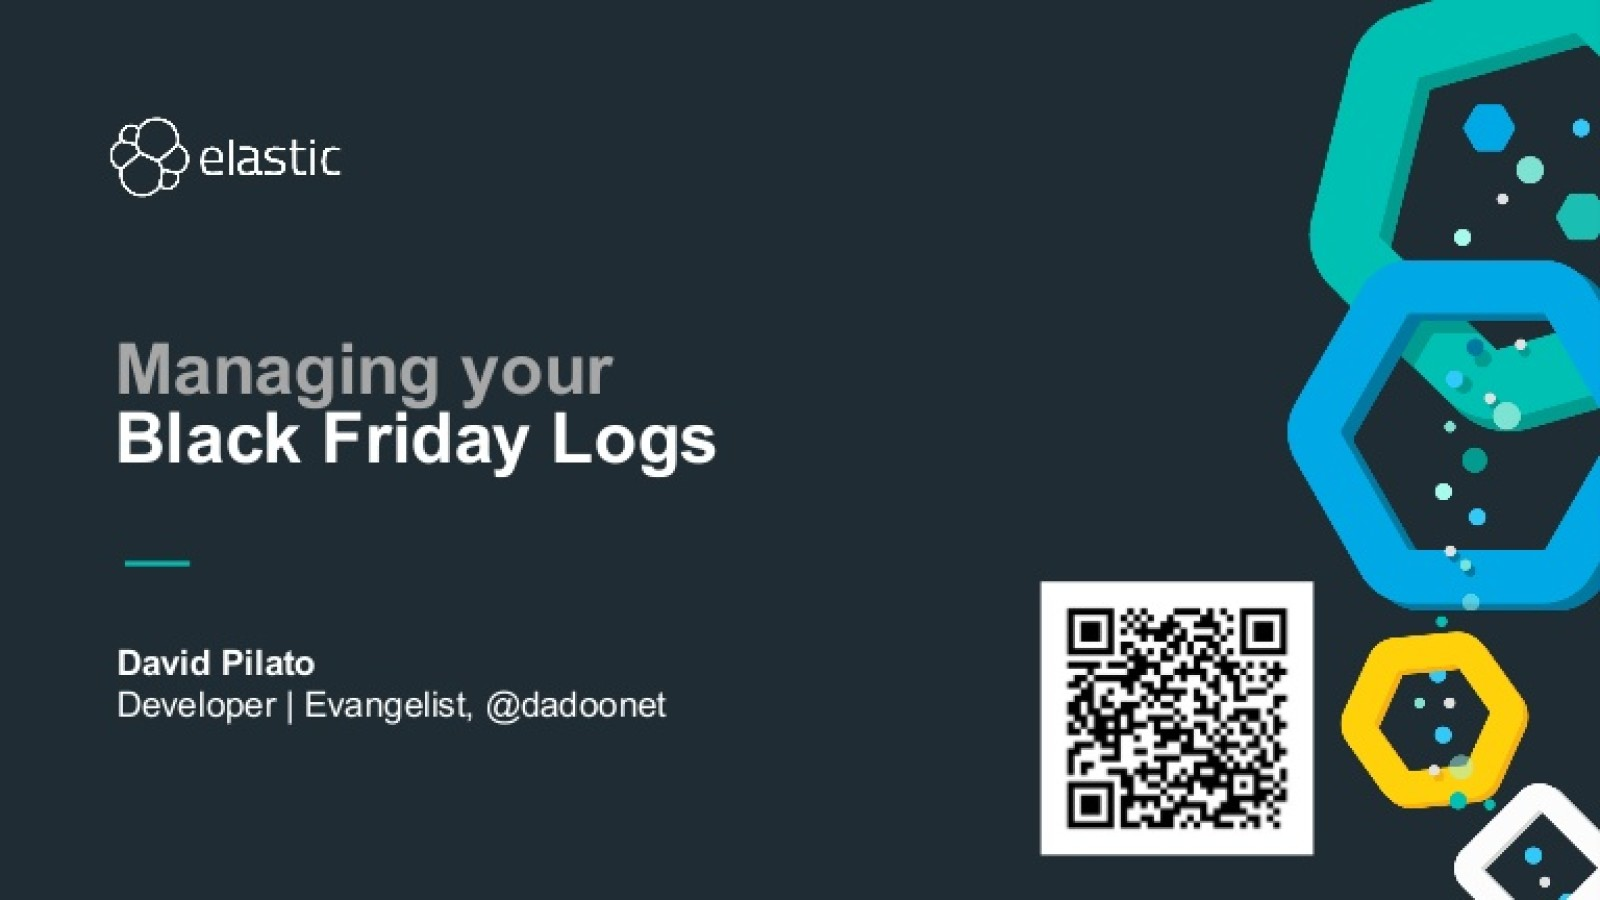 Managing your black Friday logs